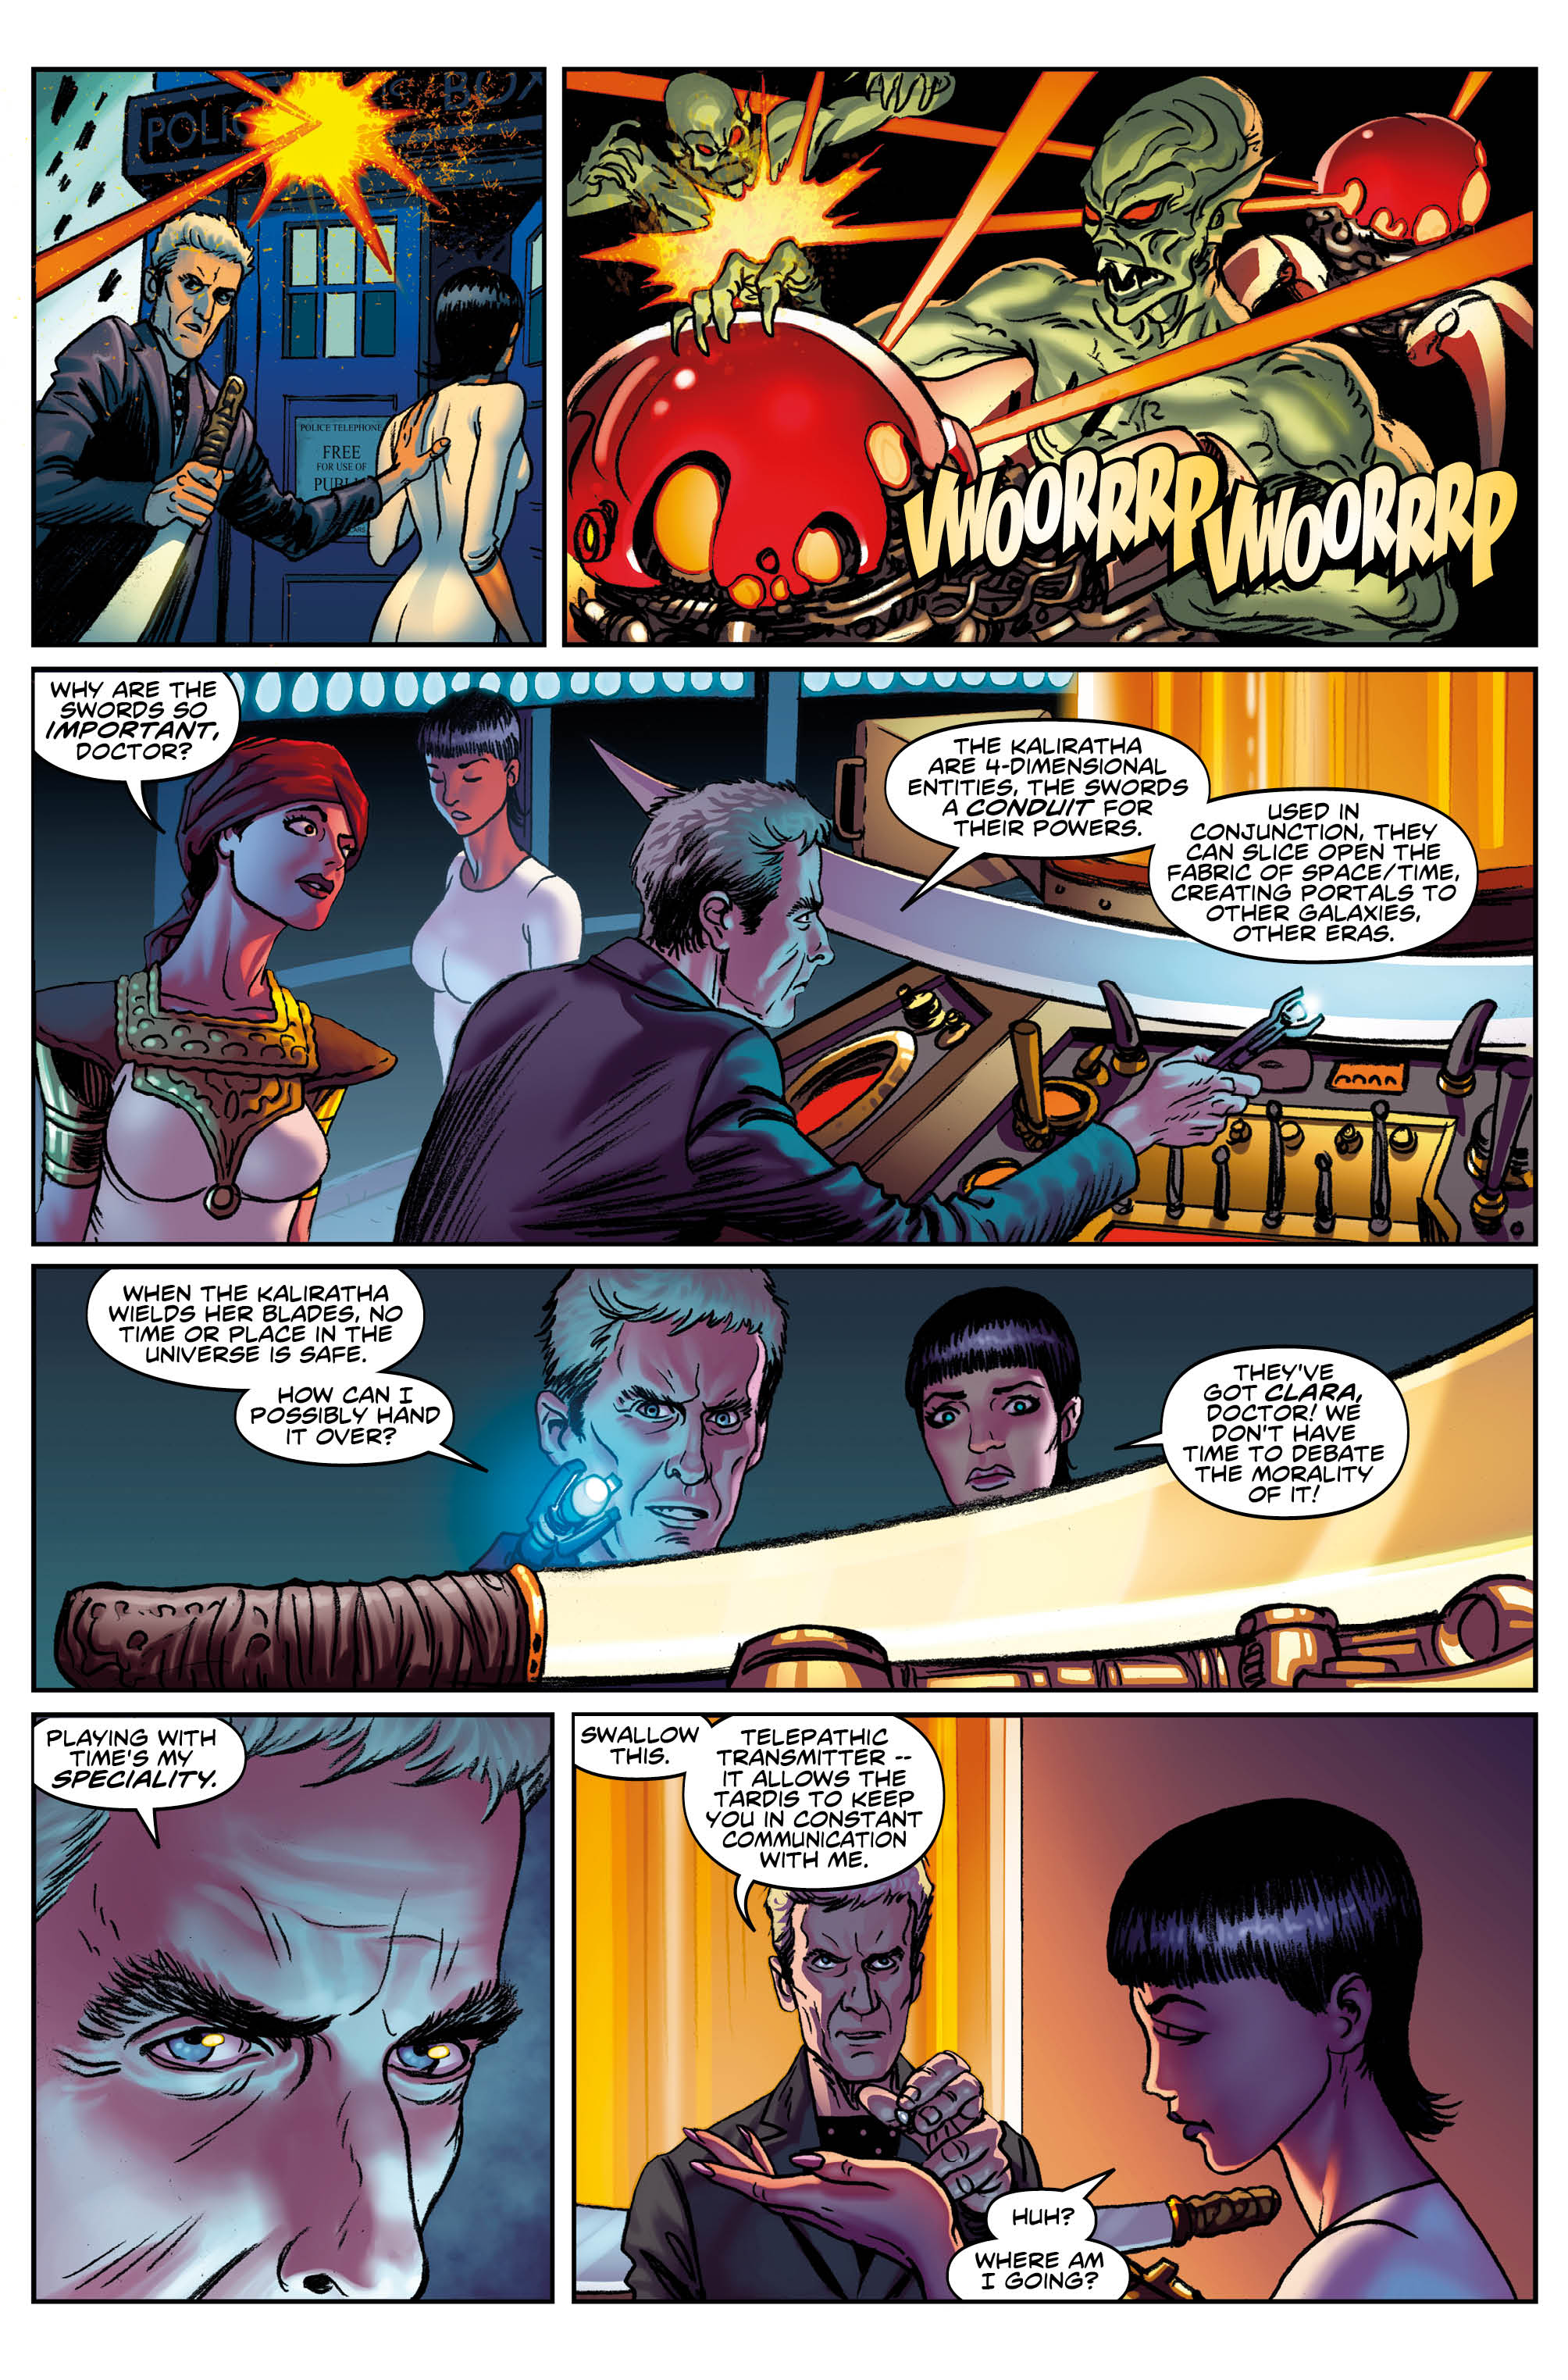 The Twelfth Doctor issue #5 (Credit: Titan)